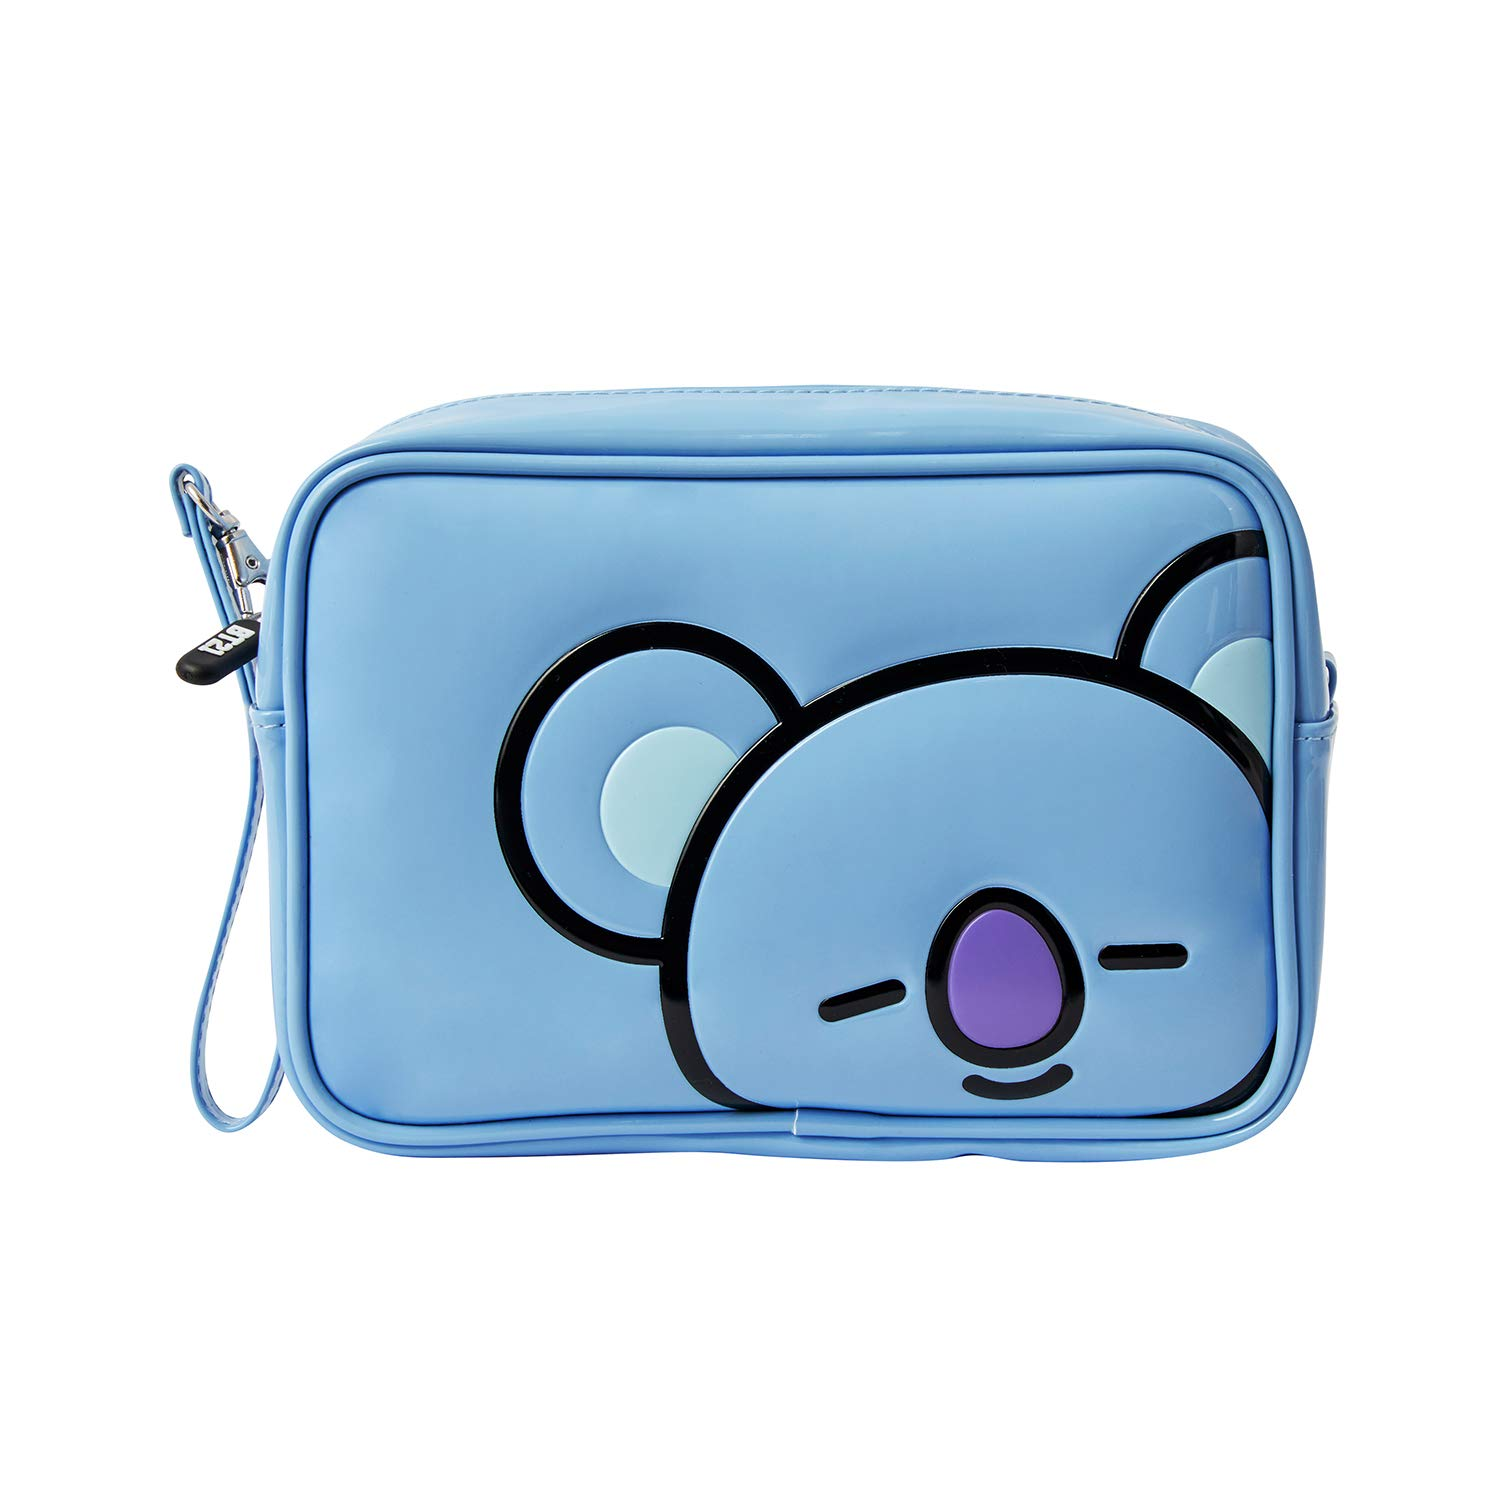 BT21 Official Merchandise by Line Friends - KOYA Enamel Cosmetic Bag Travel Pouch for Toiletry and Makeup